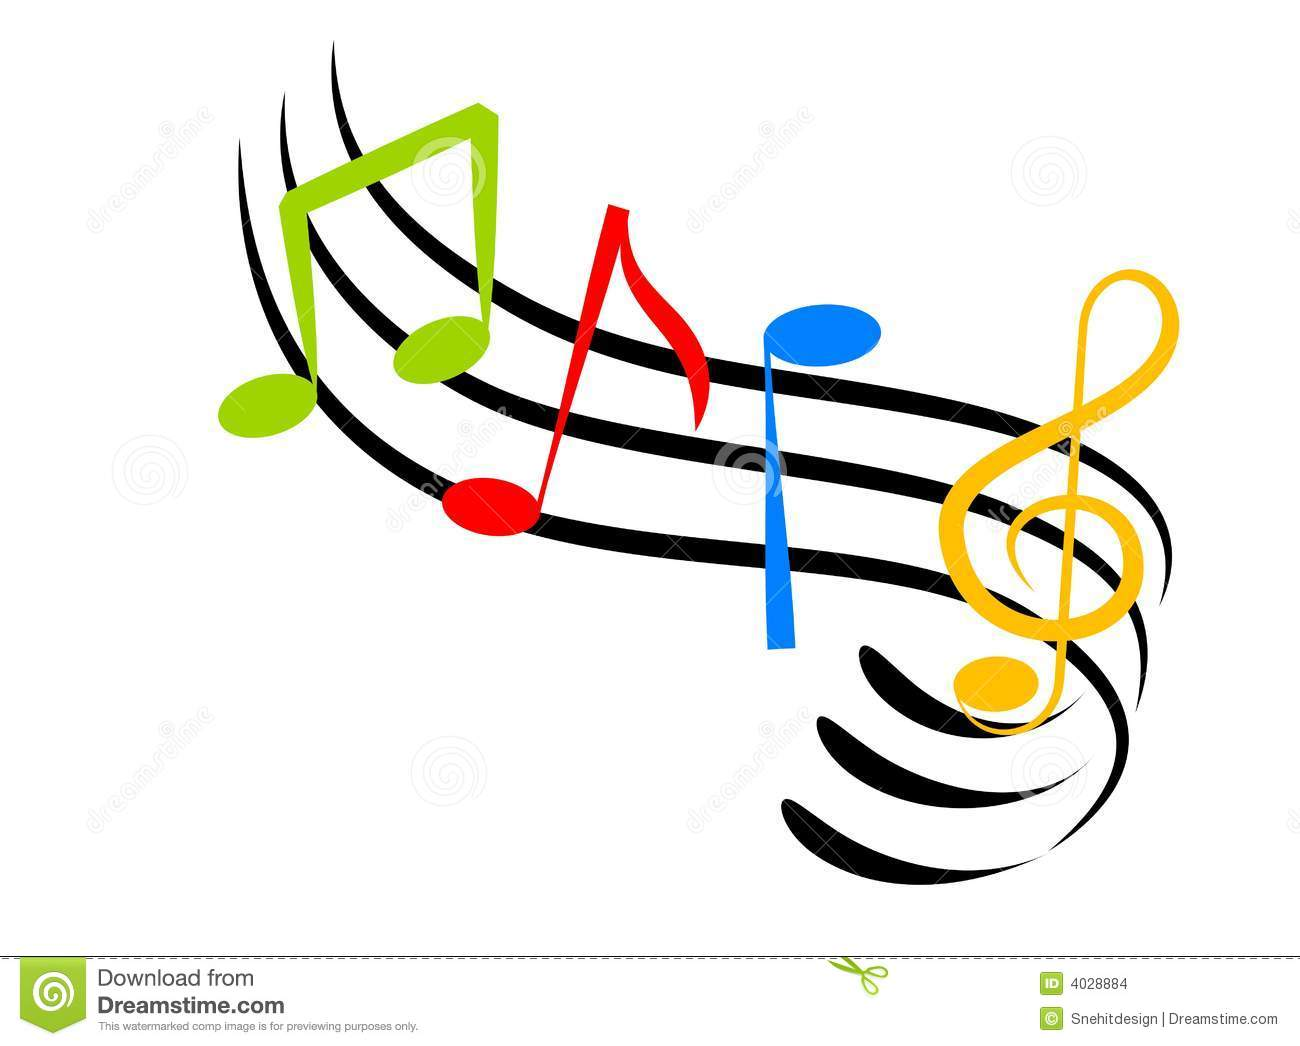 Free Music Background Clipart Download Free Clip Art: Colorful Musical Notes Wallpaper